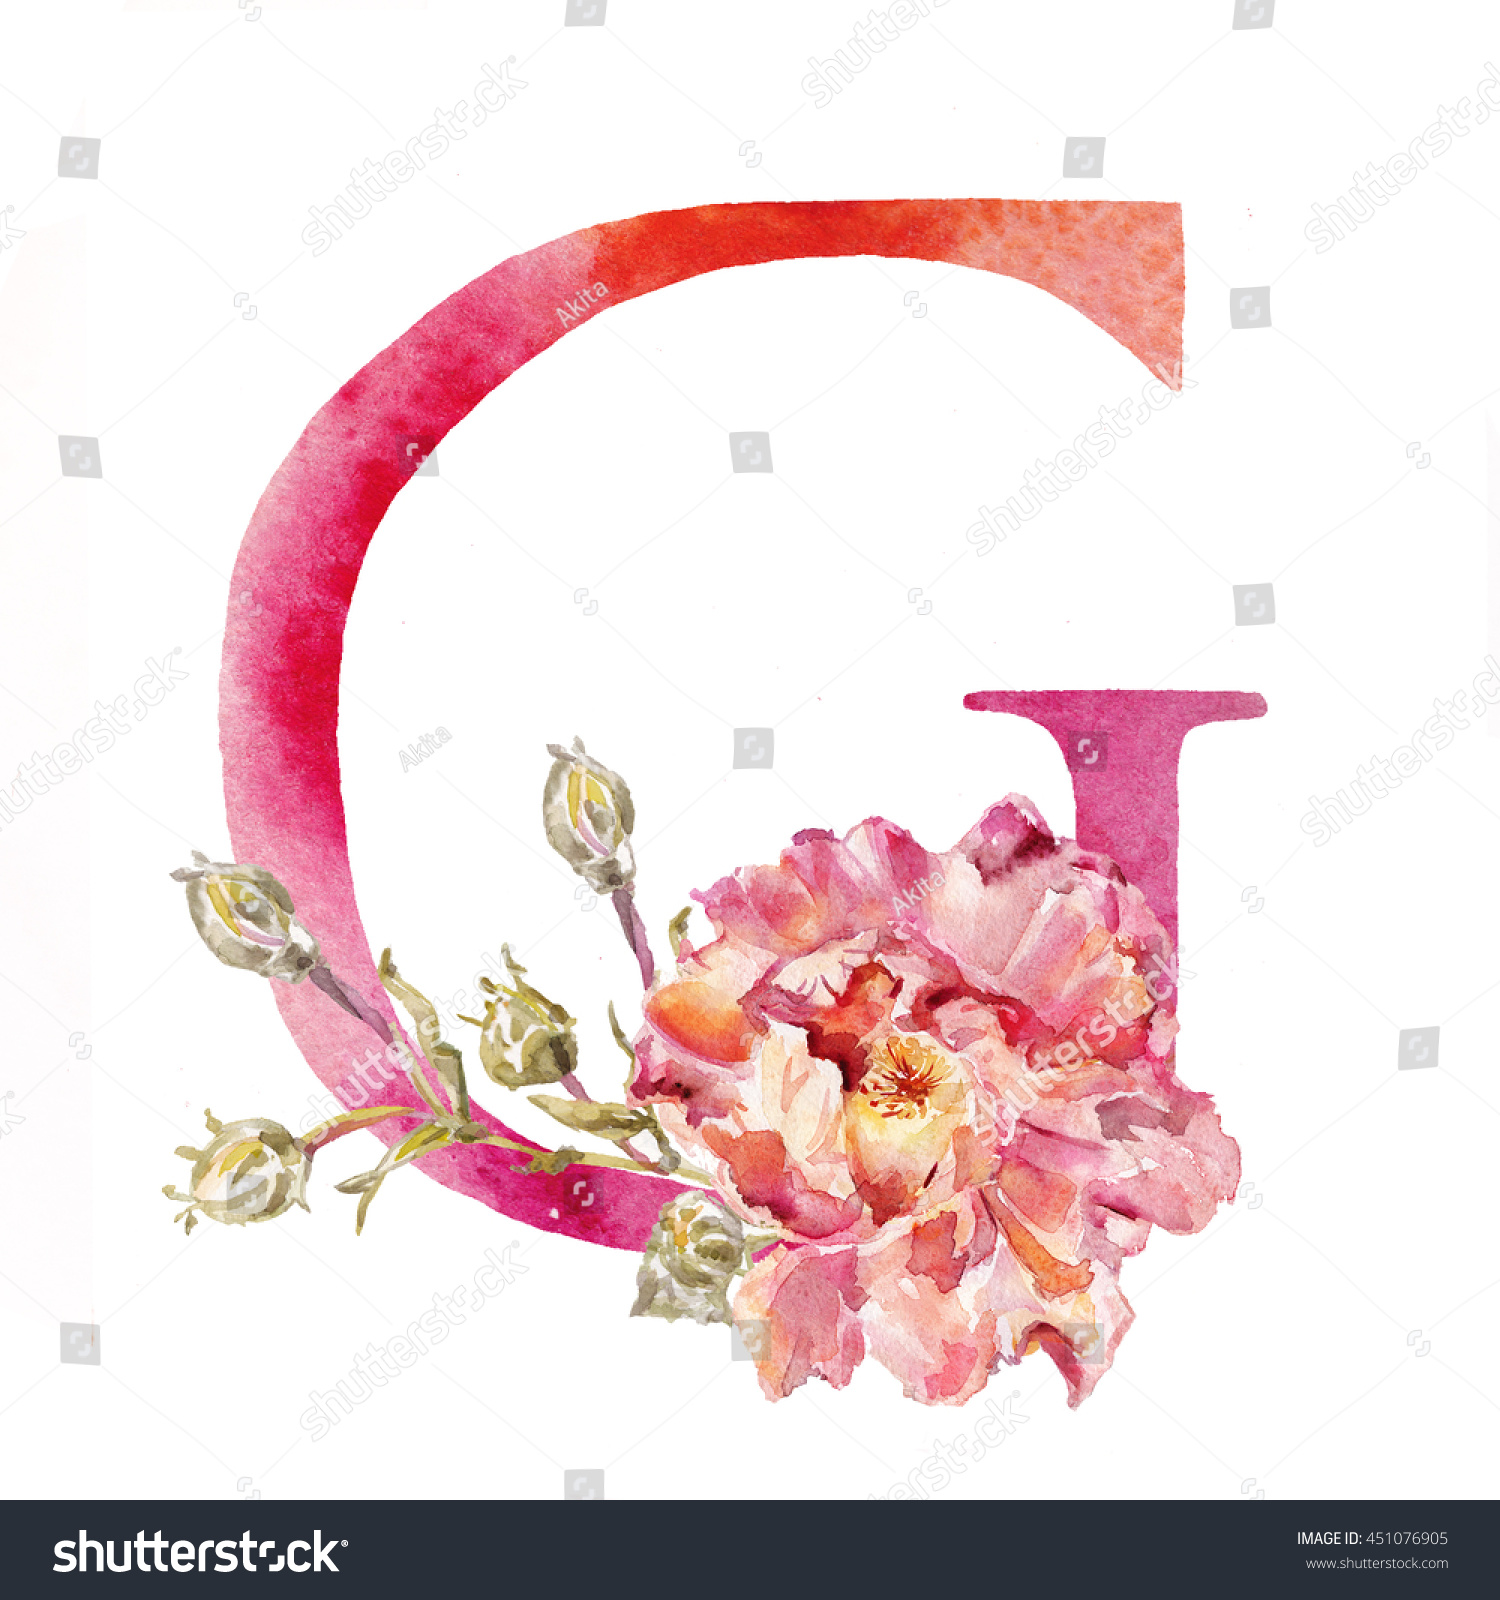 Royalty Free Stock Illustration of Watercolor Alphabet Painted ...